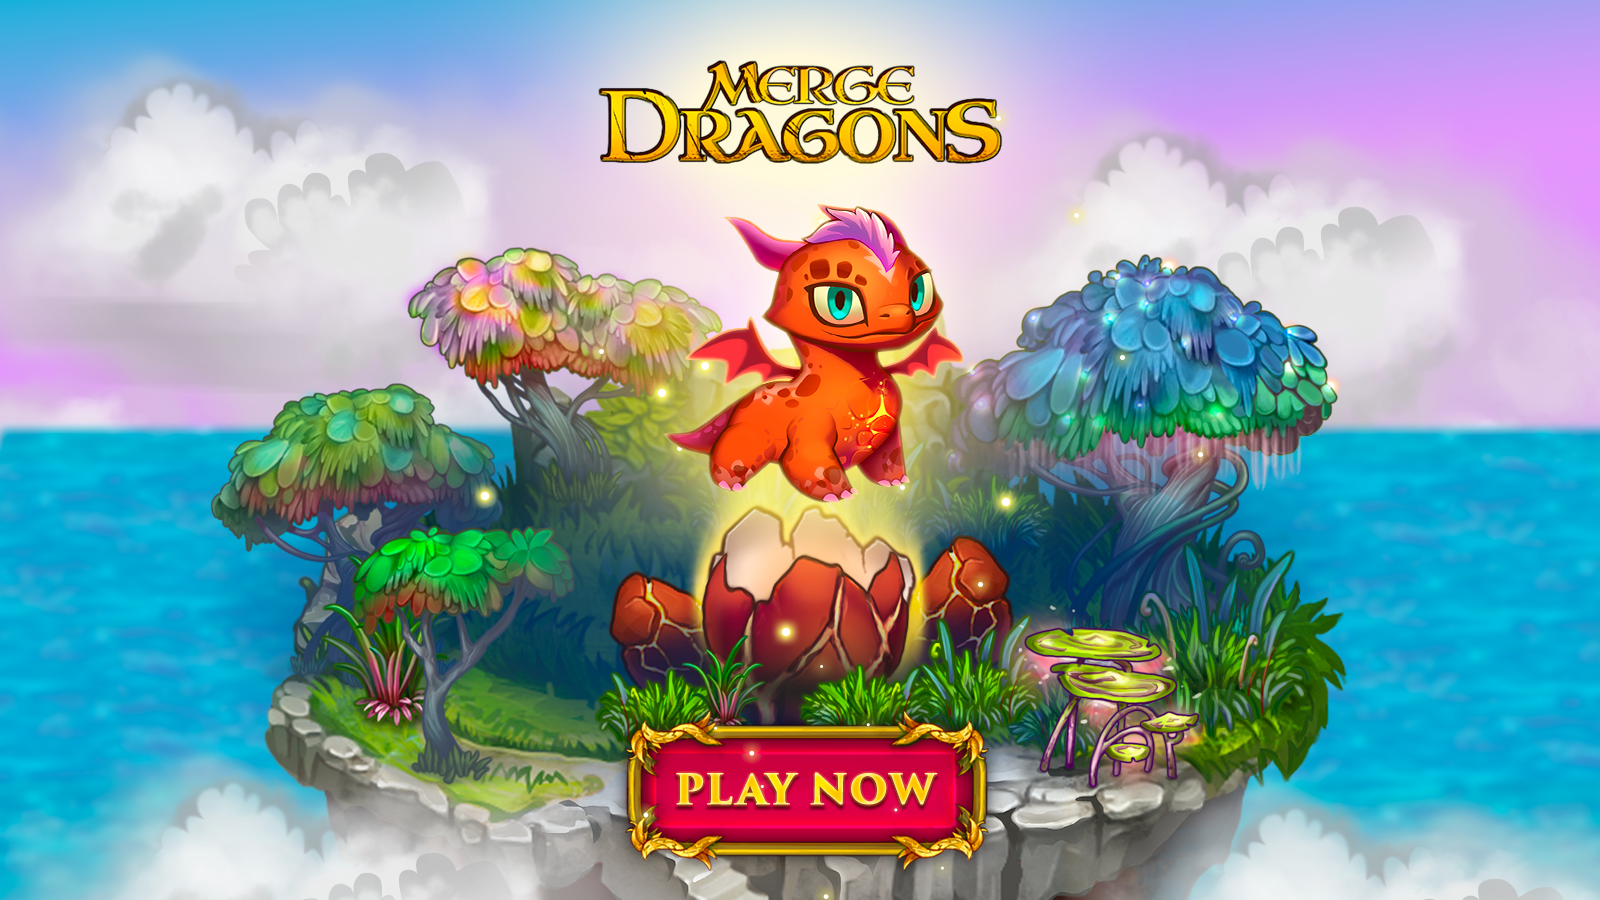 Cheats, Tips Guide - Merge Dragons